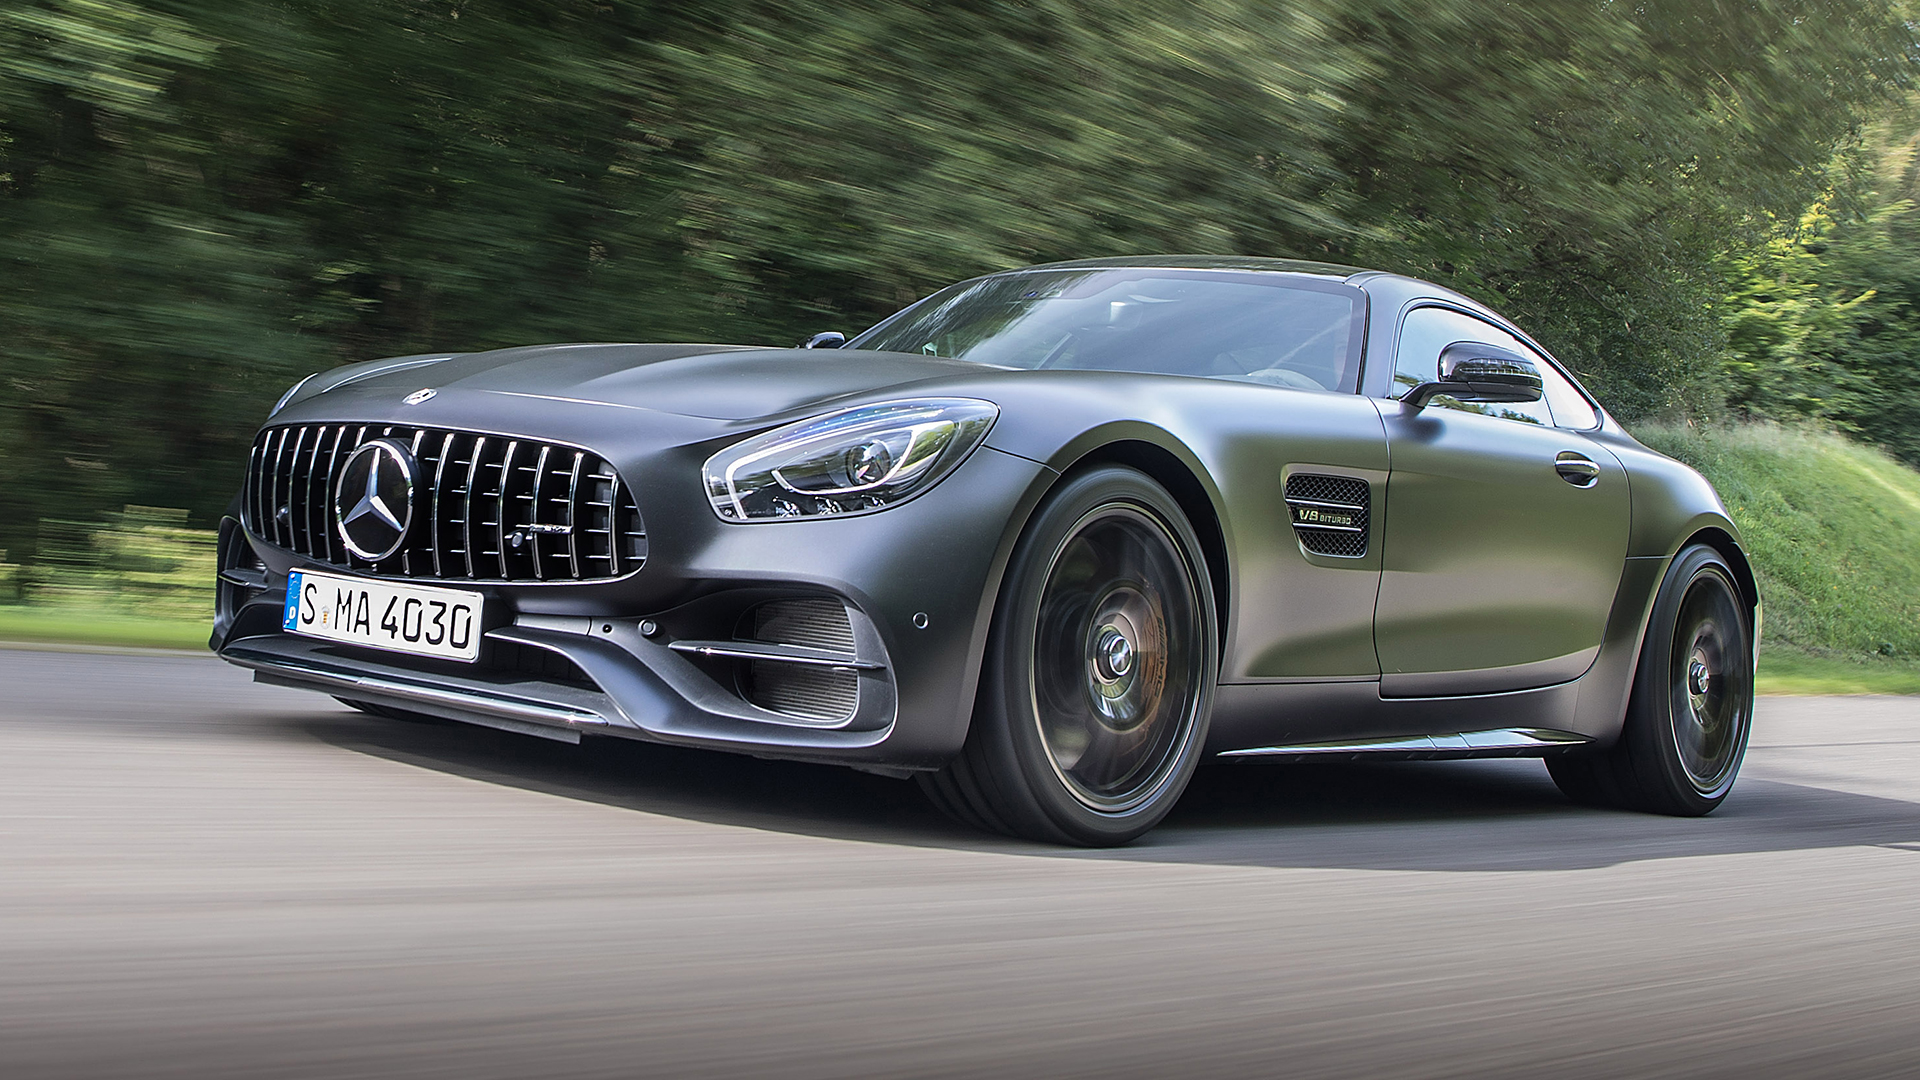 Mercedes Benz Amg Gt C Used Cars For Sale Autotrader Uk